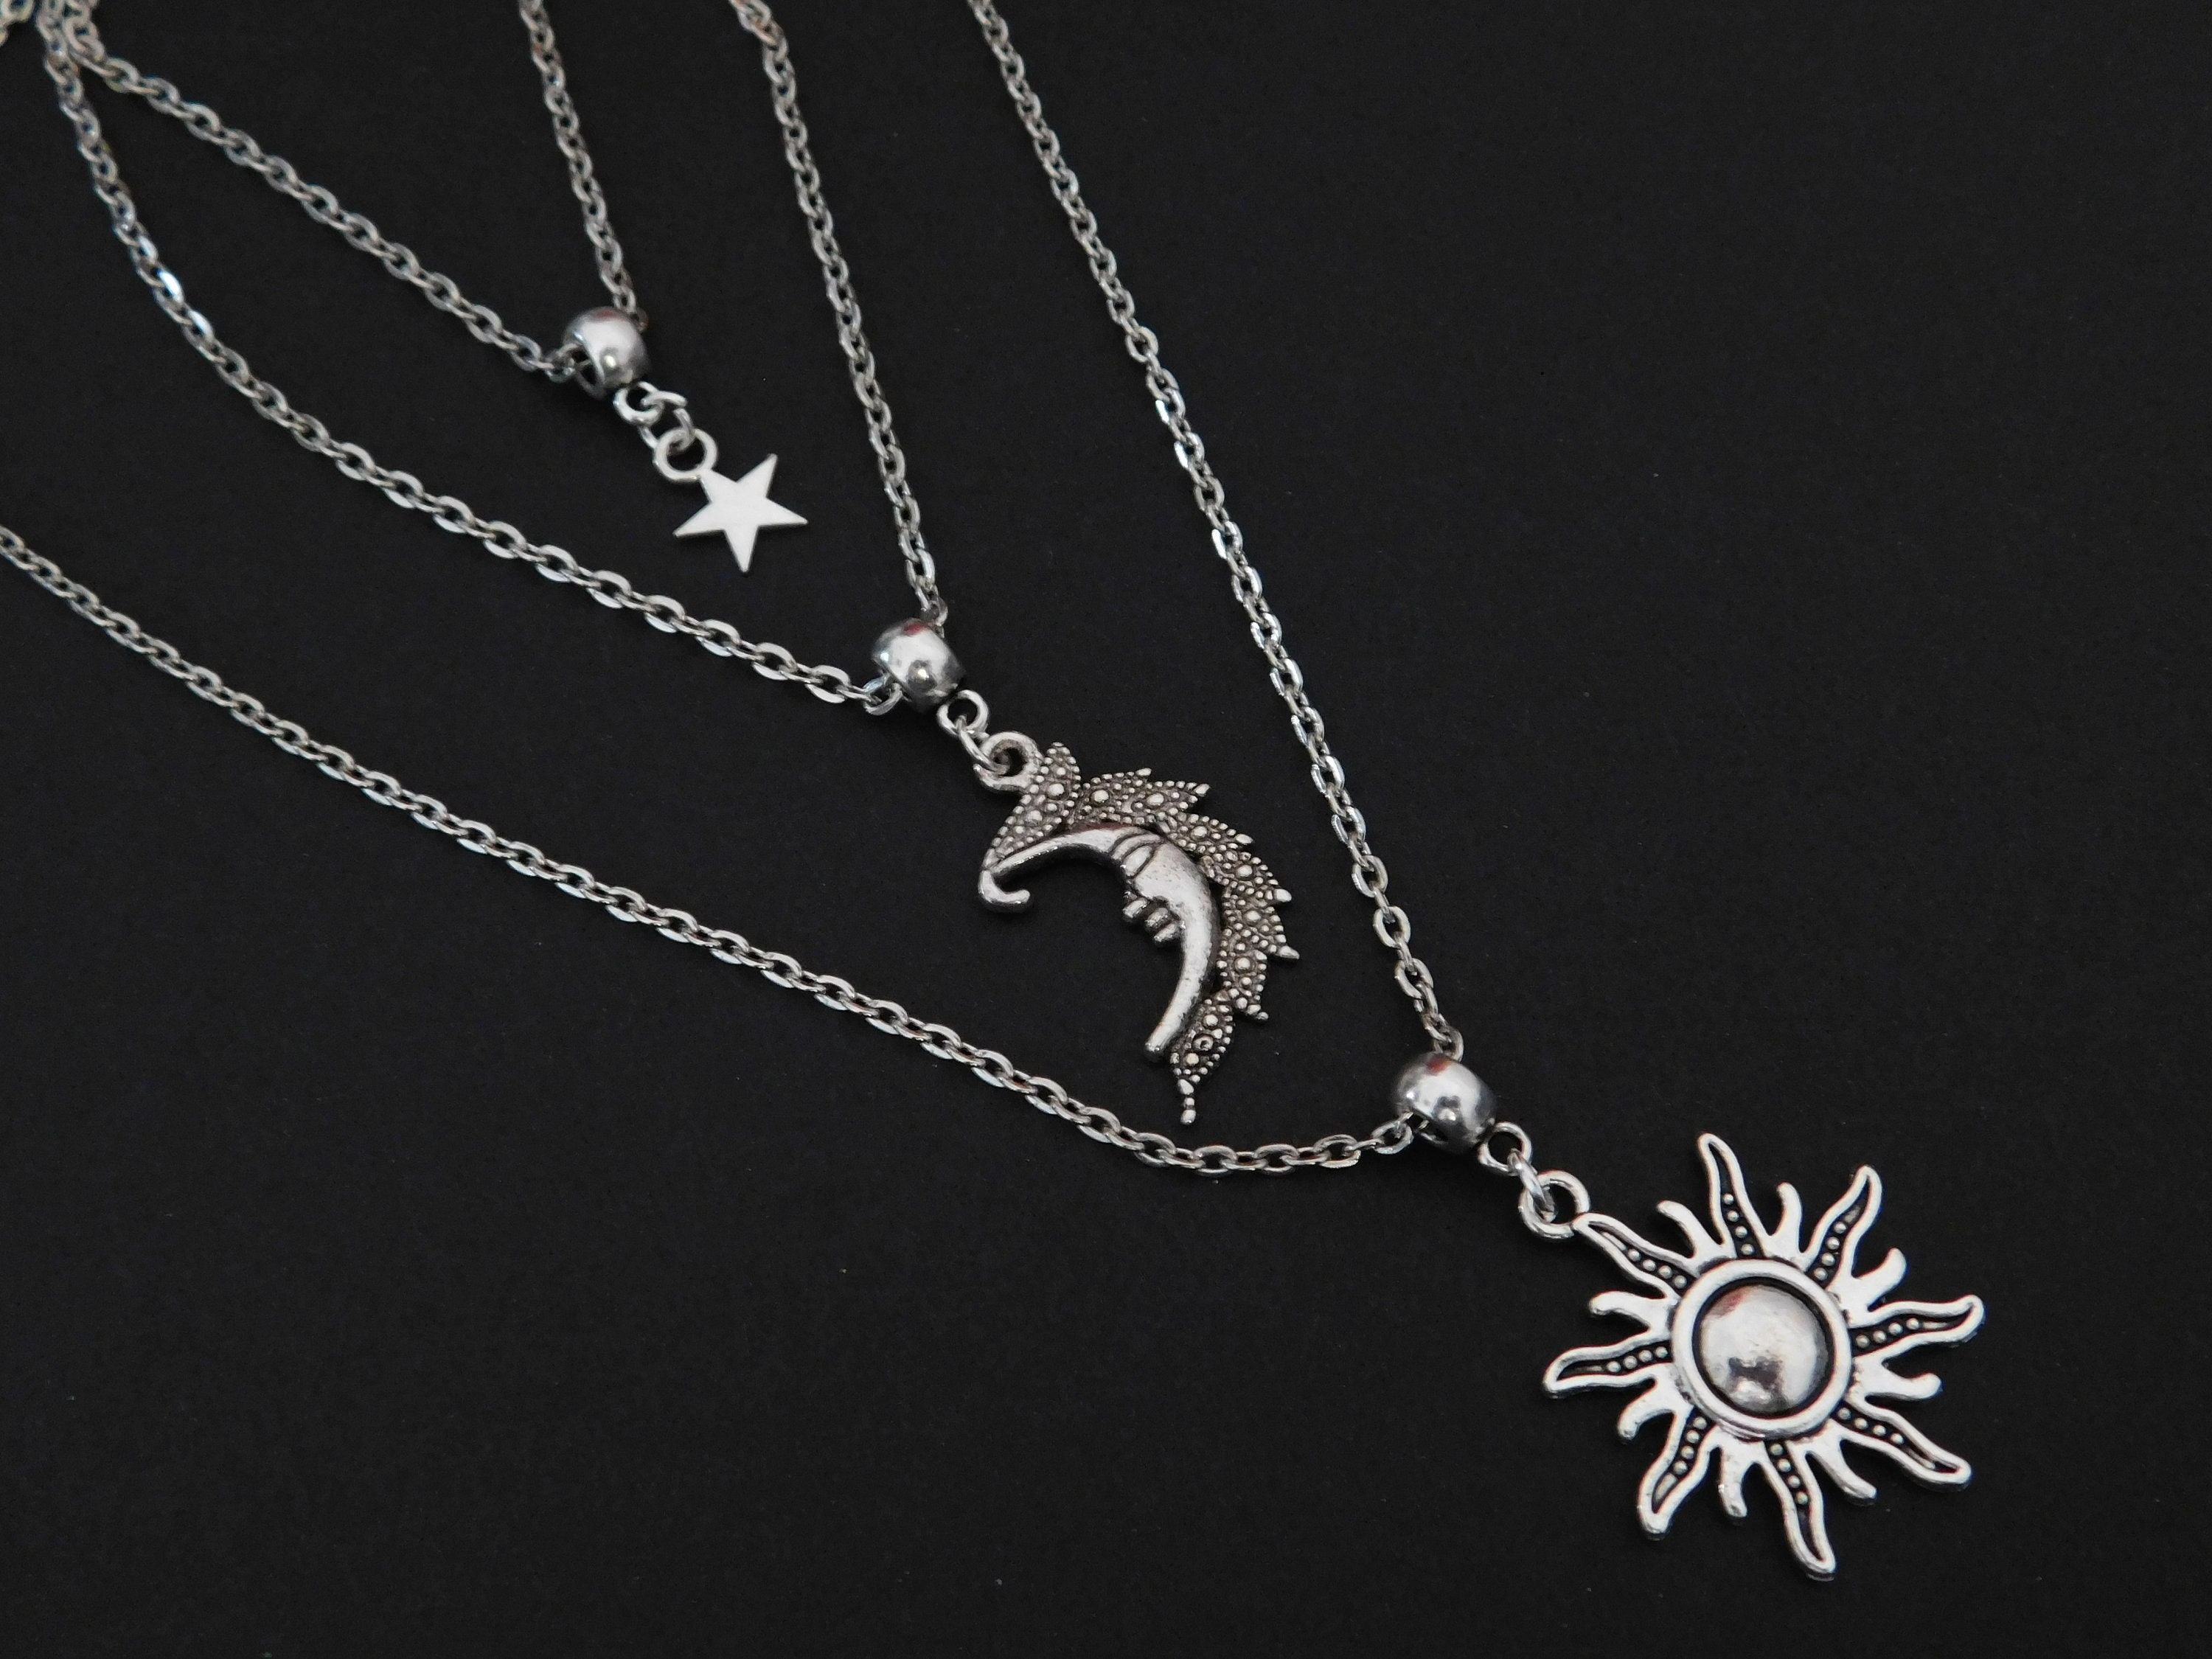 enem to sun silver necklace celtic listing free shipping il calculate and length sterling fullxfull moon